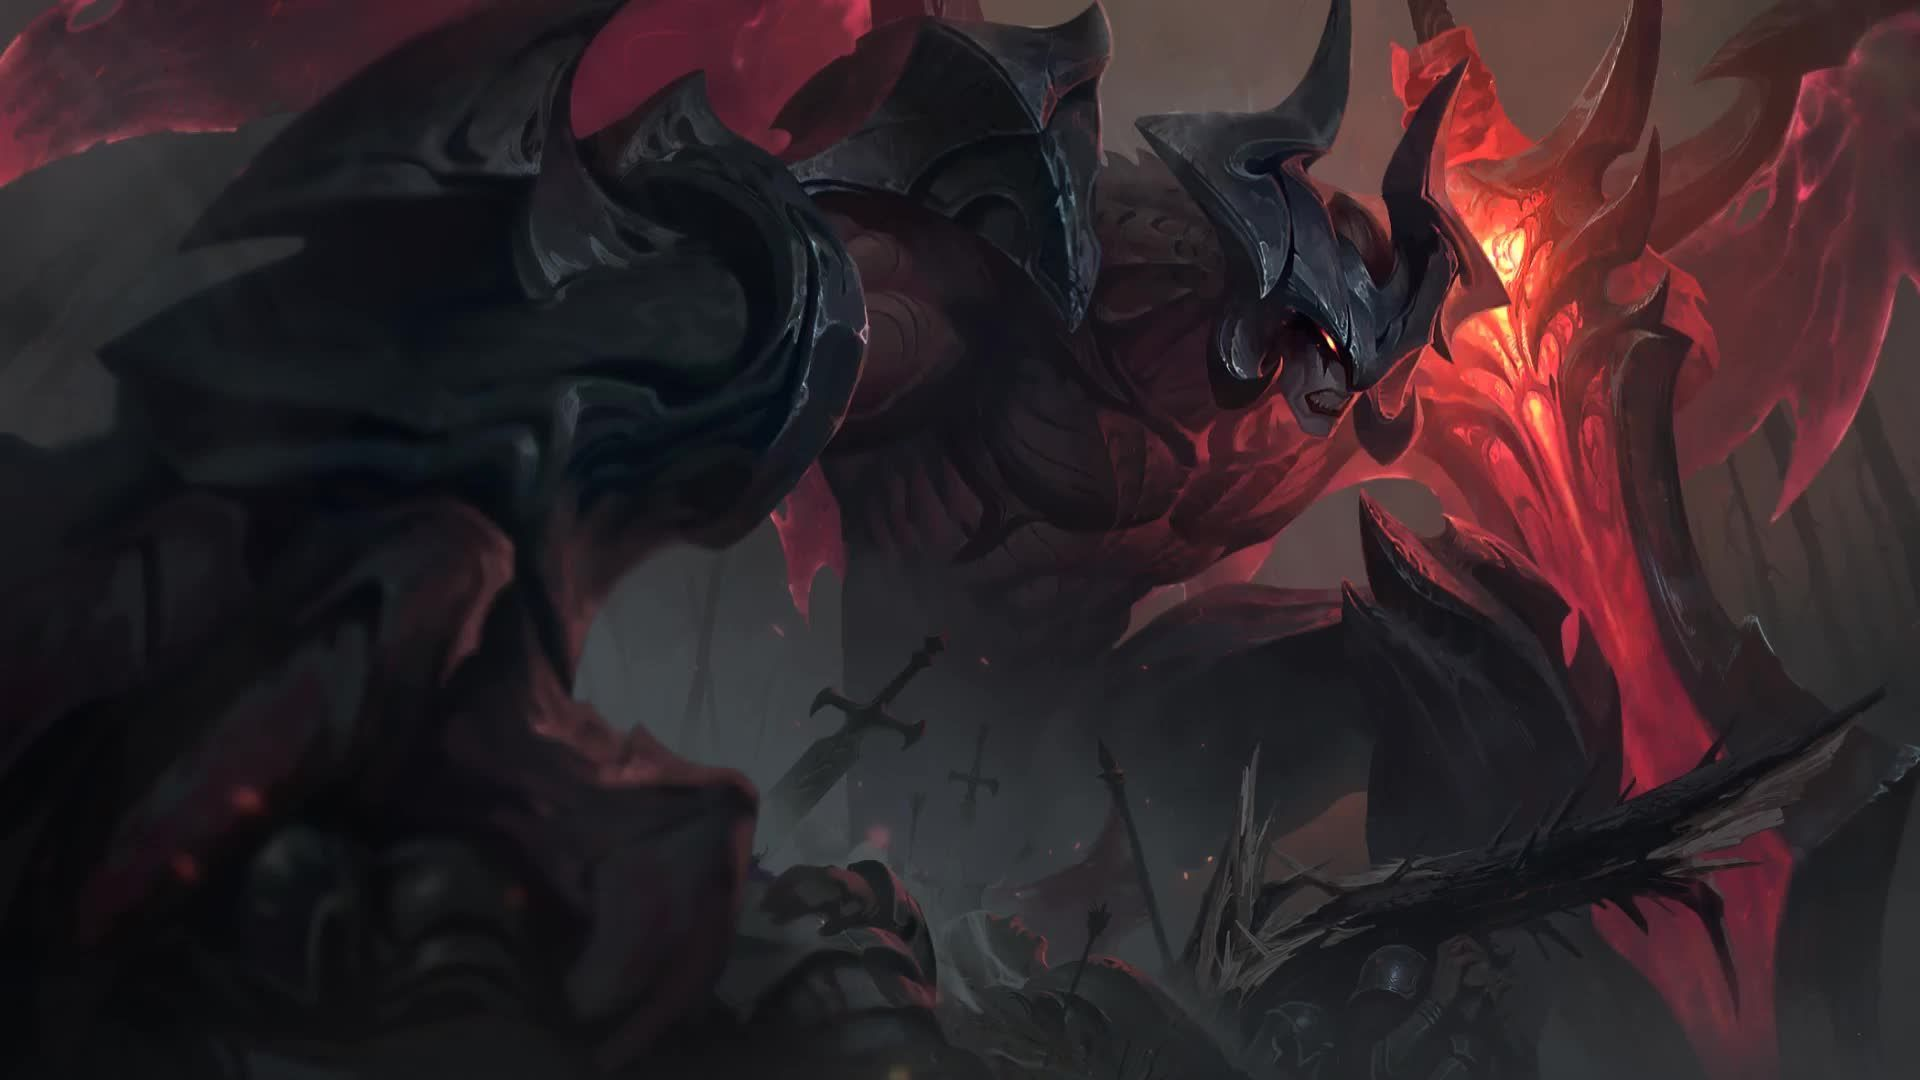 Aatrox Wallpapers Top Free Aatrox Backgrounds Wallpaperaccess